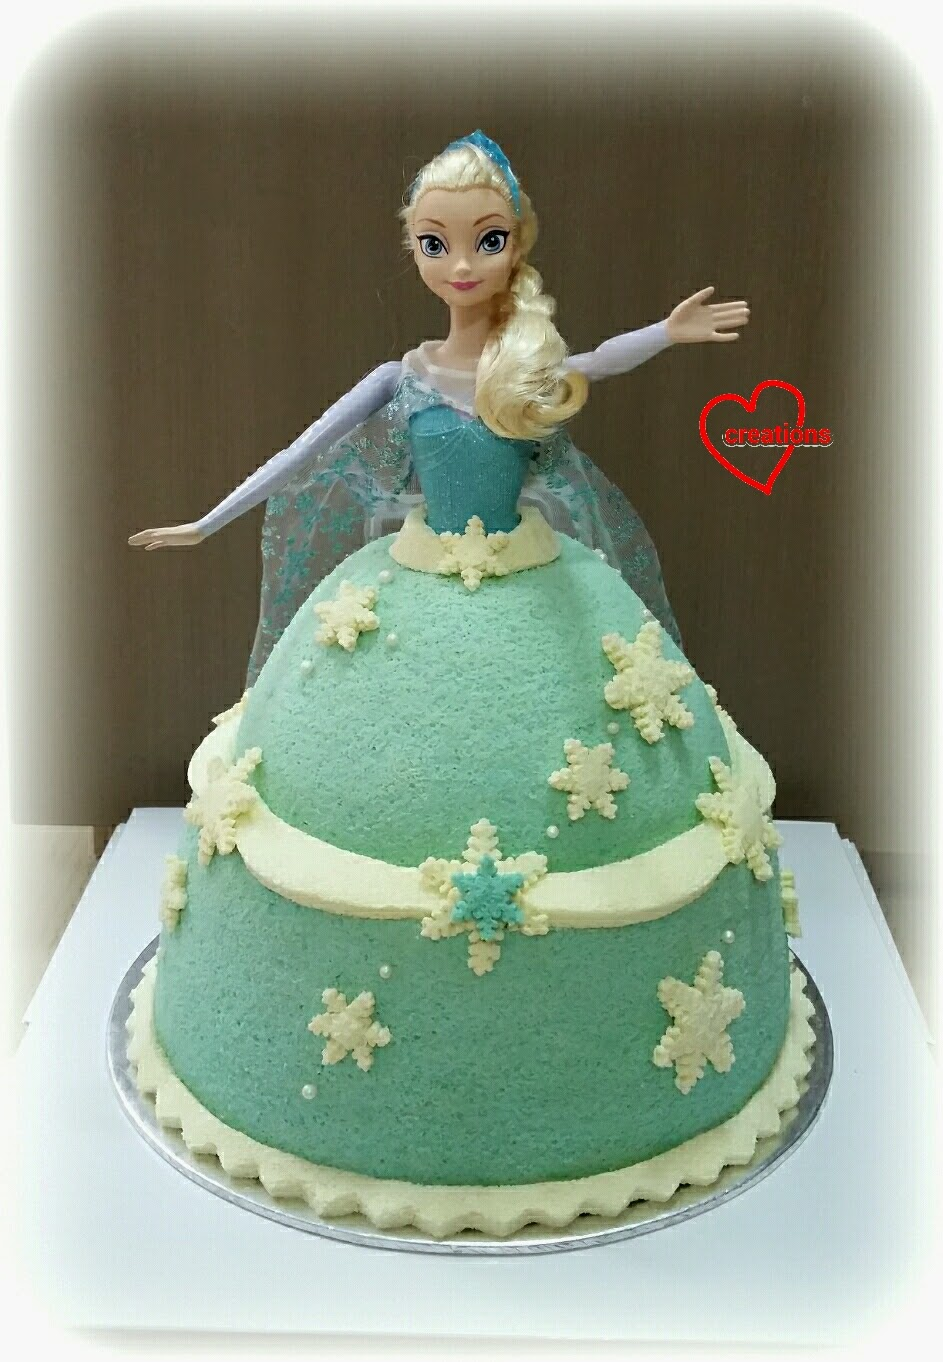 Cake Elsa Frozen Fever : Loving Creations for You: Elsa Doll Chiffon Cake